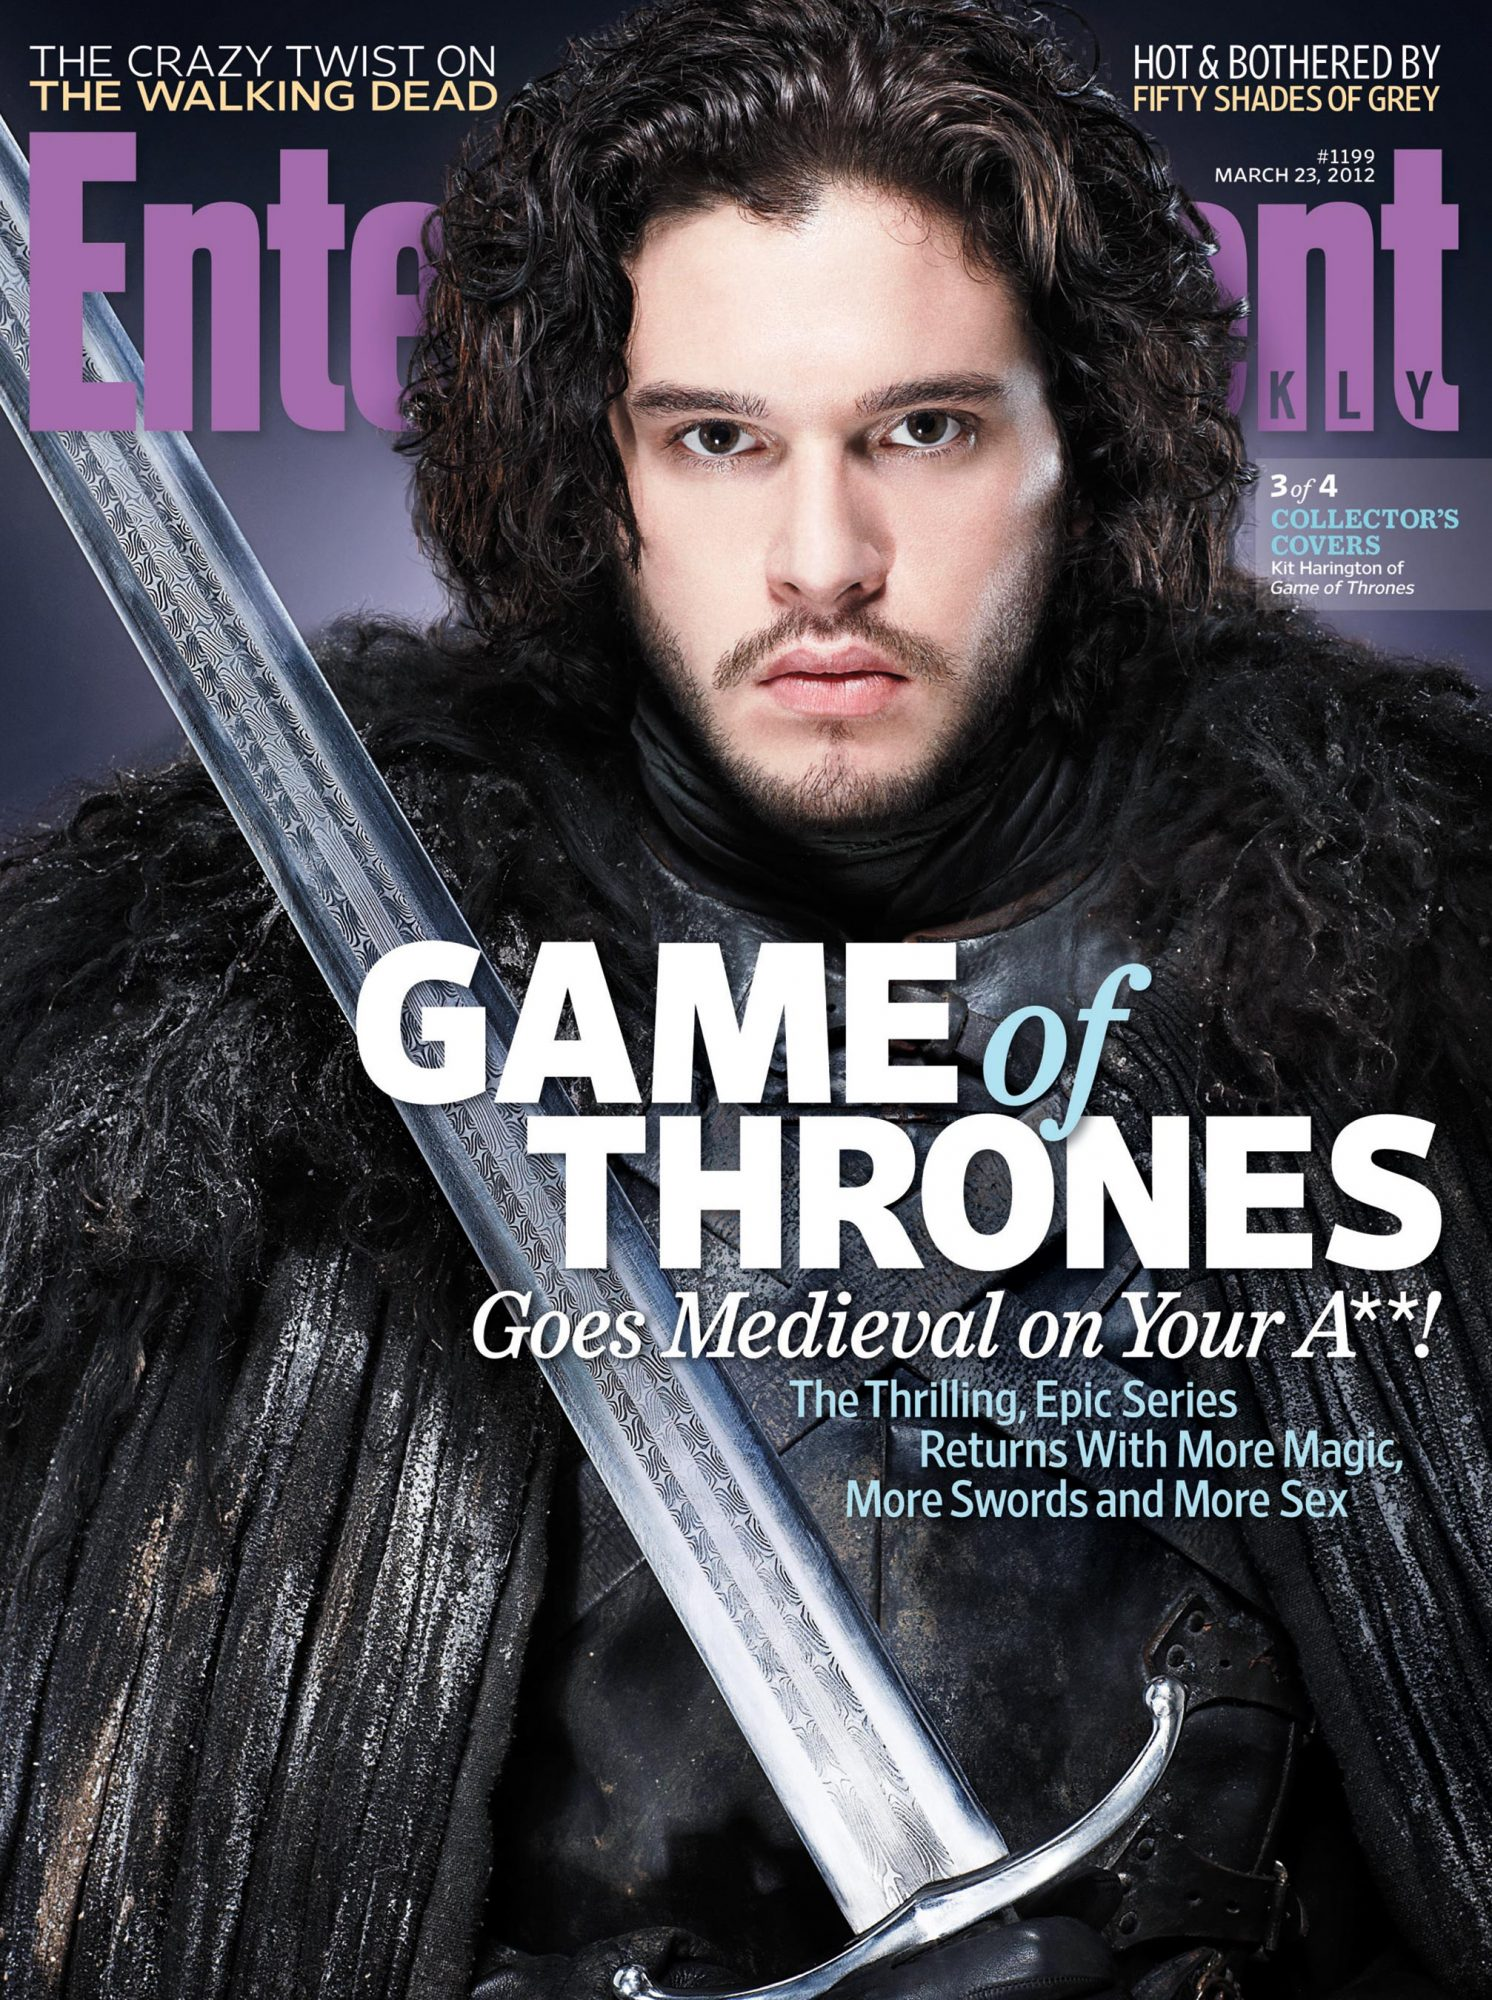 Entertainment WeeklyIssue # 1199 - March, 23, 2012Game Of Thrones